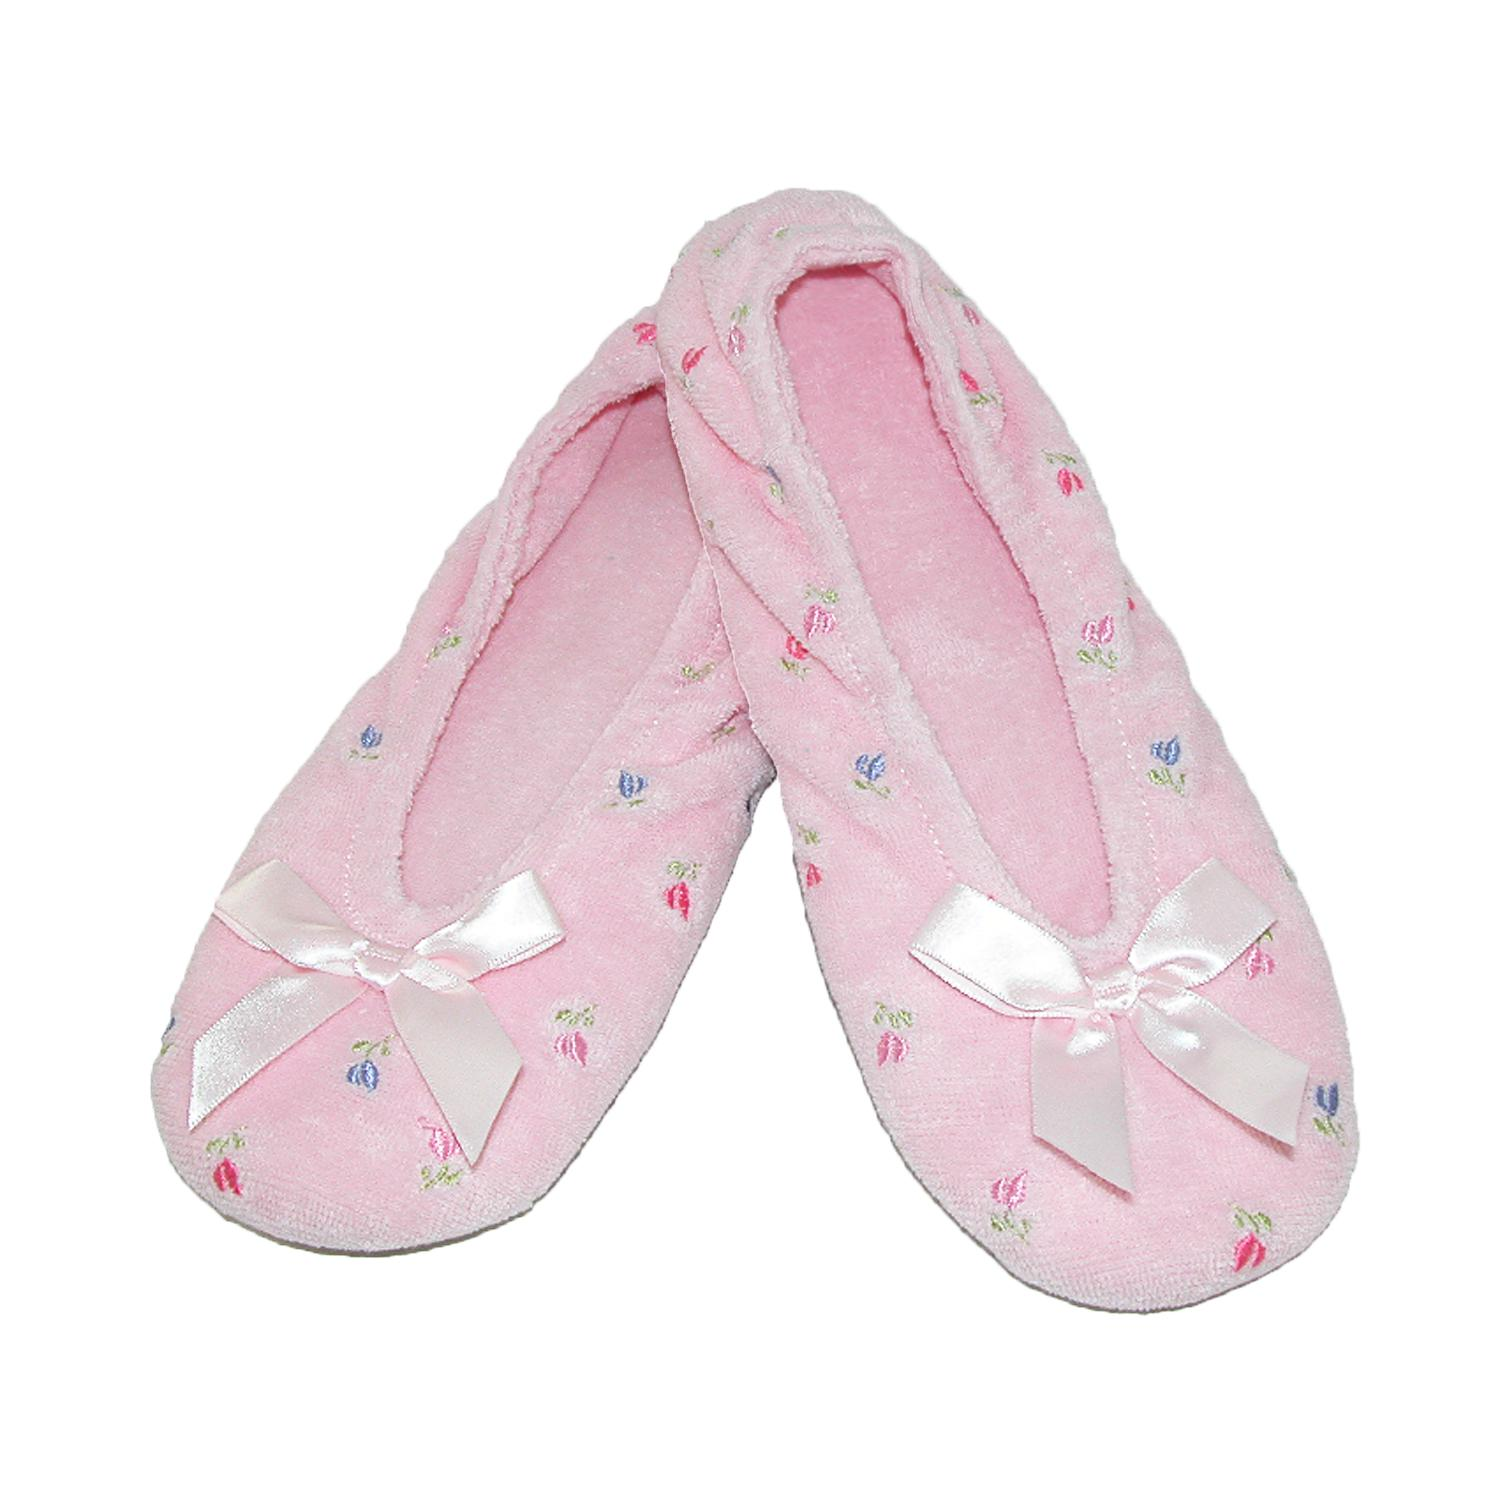 New-Isotoner-Women-039-s-Embroidered-Terry-Ballerina-Slippers thumbnail 11